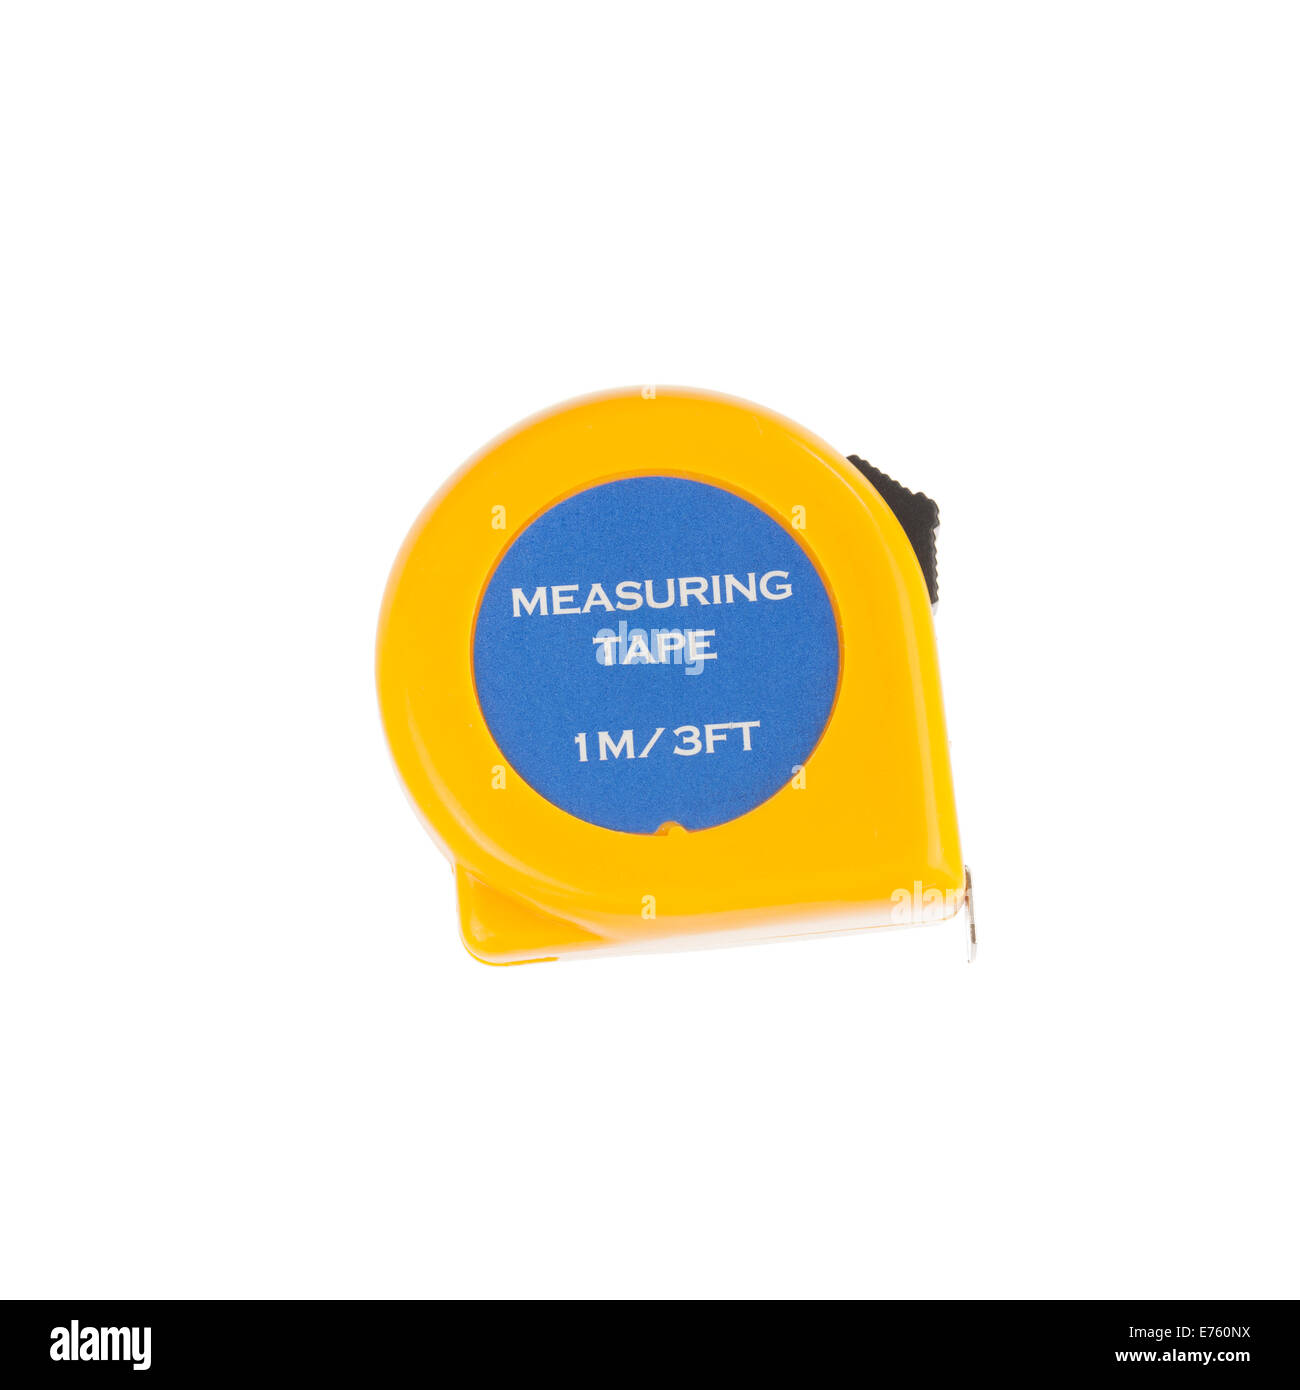 Tape measure on a white background - Stock Image